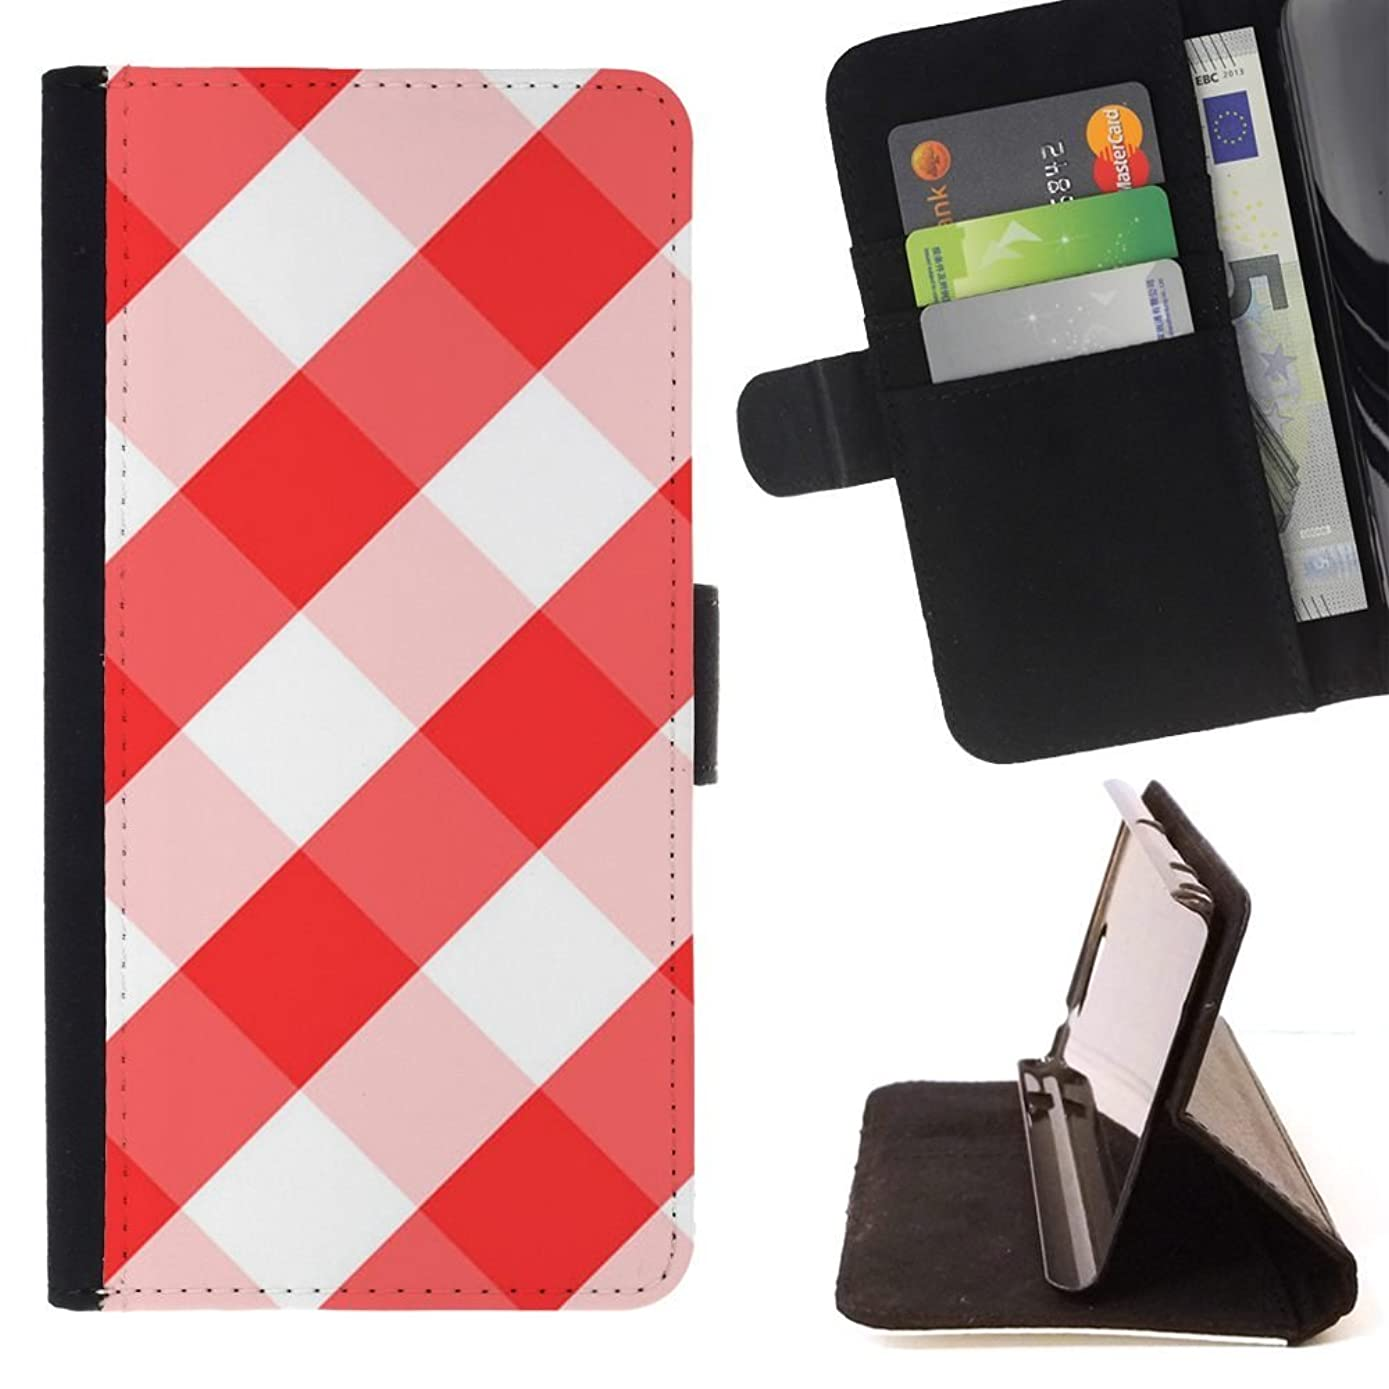 White Red Tablecloth Checkered Pattern - Colorful Pattern Flip Wallet Leather Holster Holster Protective Skin Case Cover For LG G4 Stylus / G Stylo / LS770 H635 H630D H631 MS631 H635 H540 H630D H542